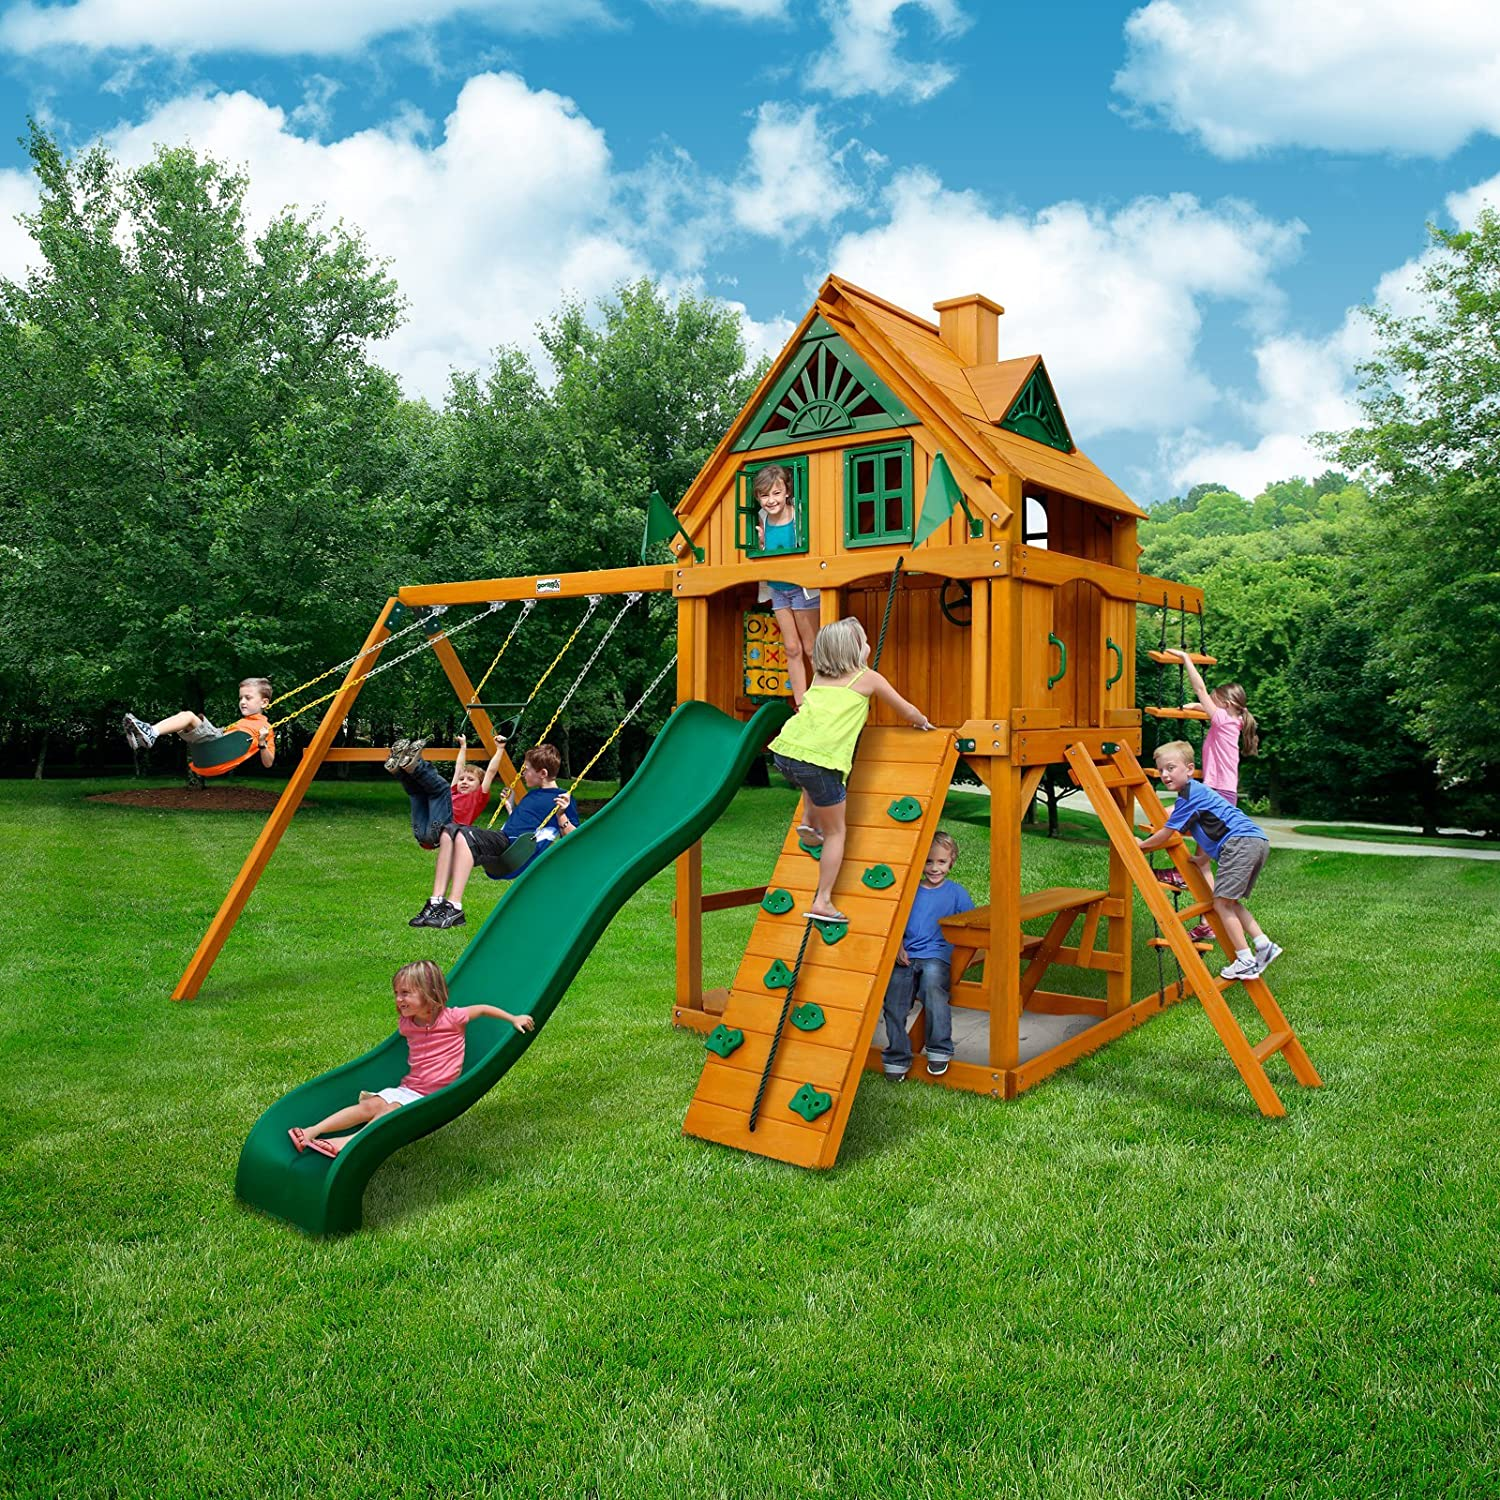 amazon com mountain ridge swing set with timber shield toys u0026 games